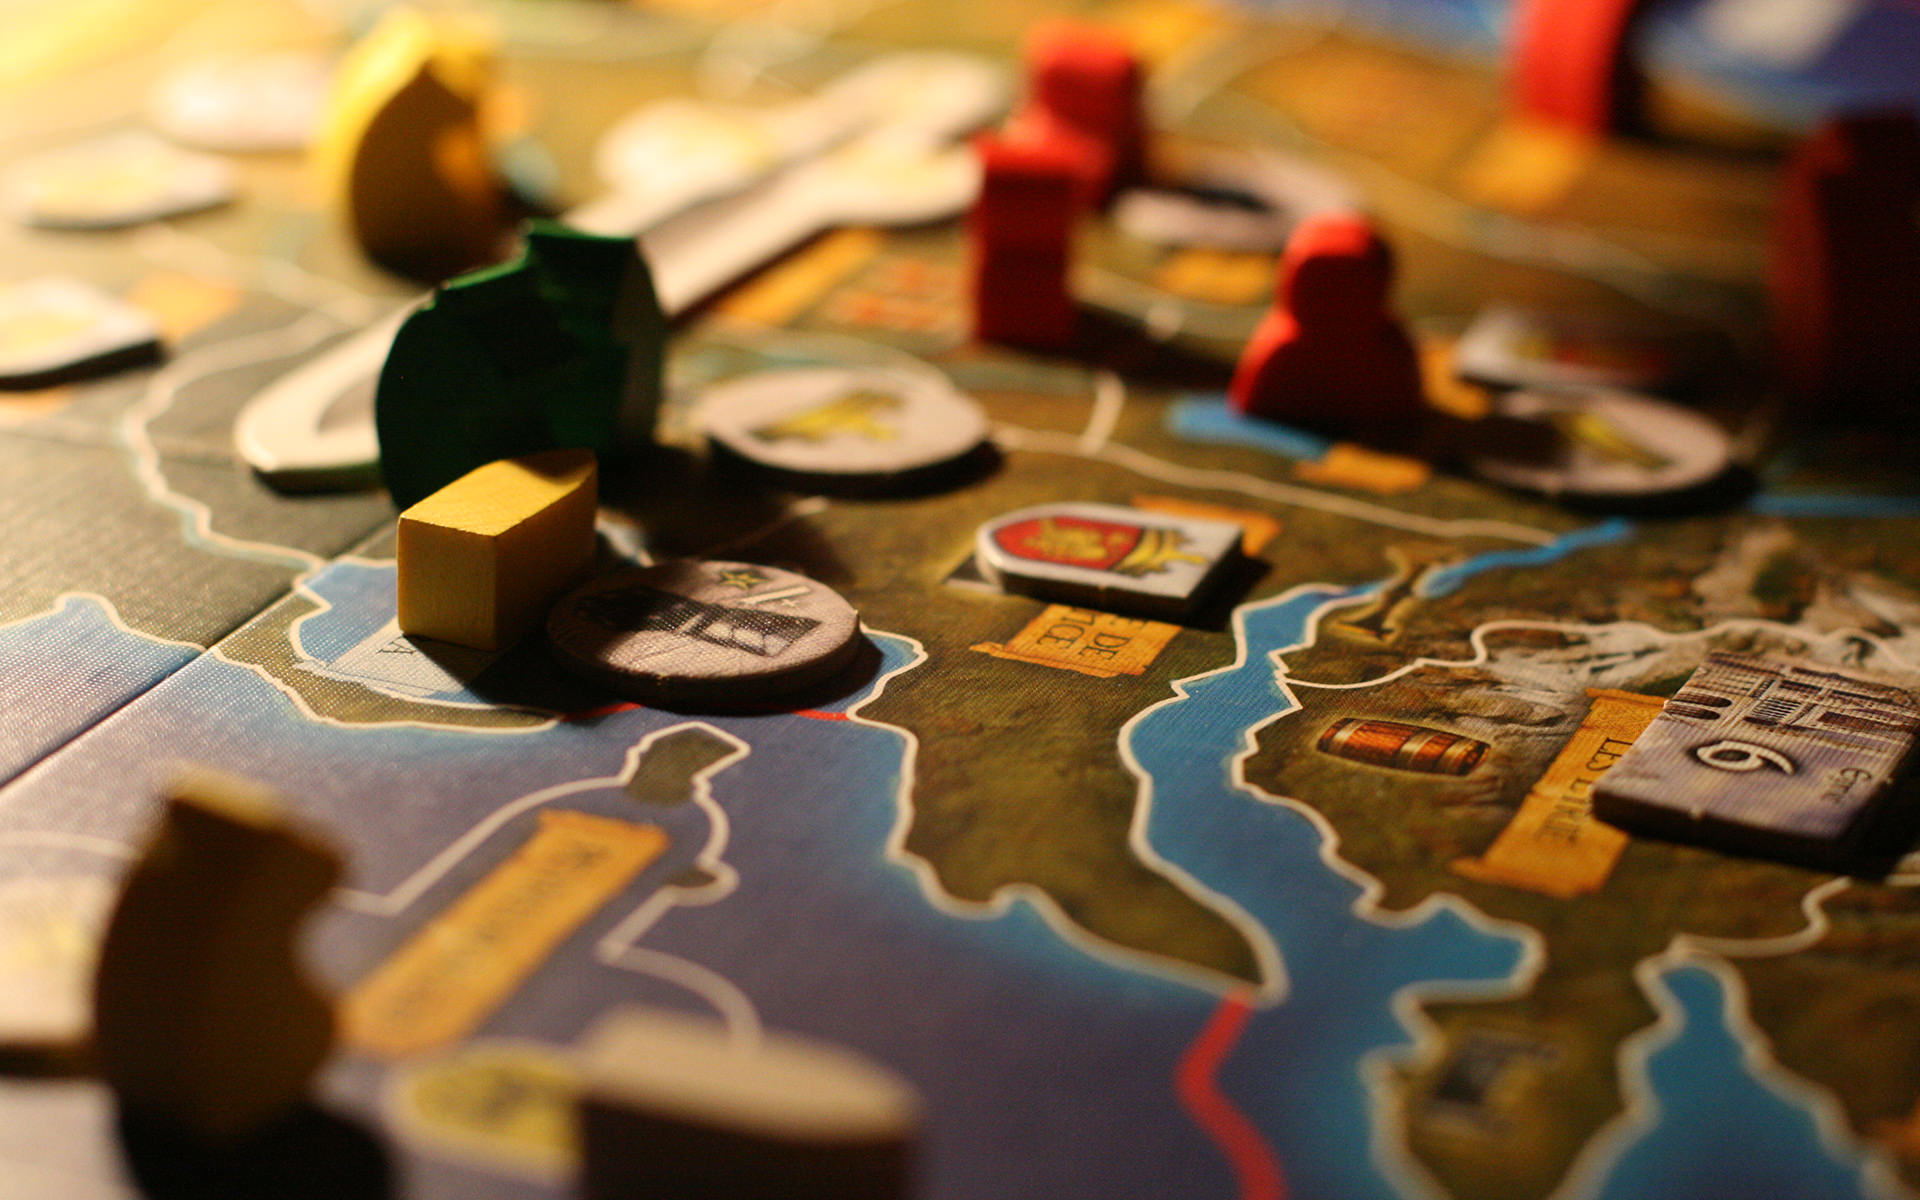 The Third Place event - Board Games night